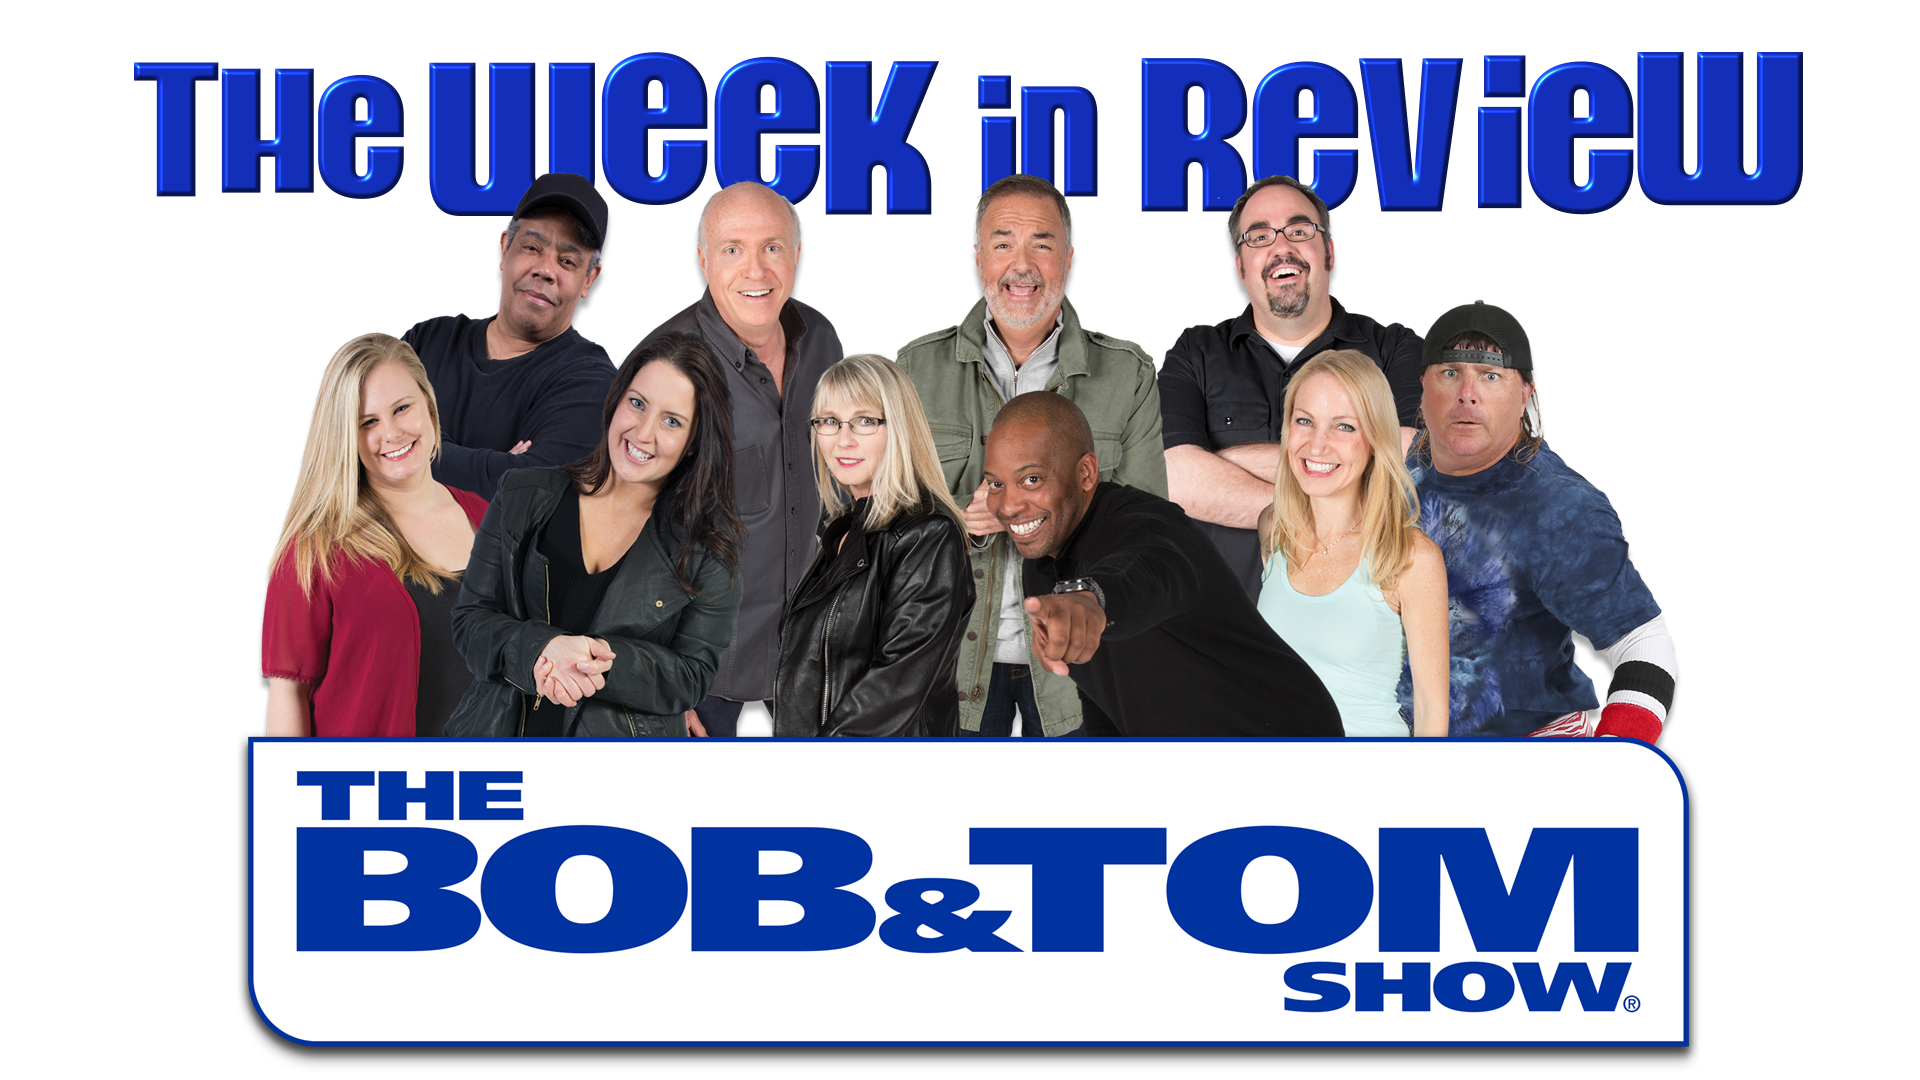 The BOB & TOM Show Week in Review – April 12, 2019